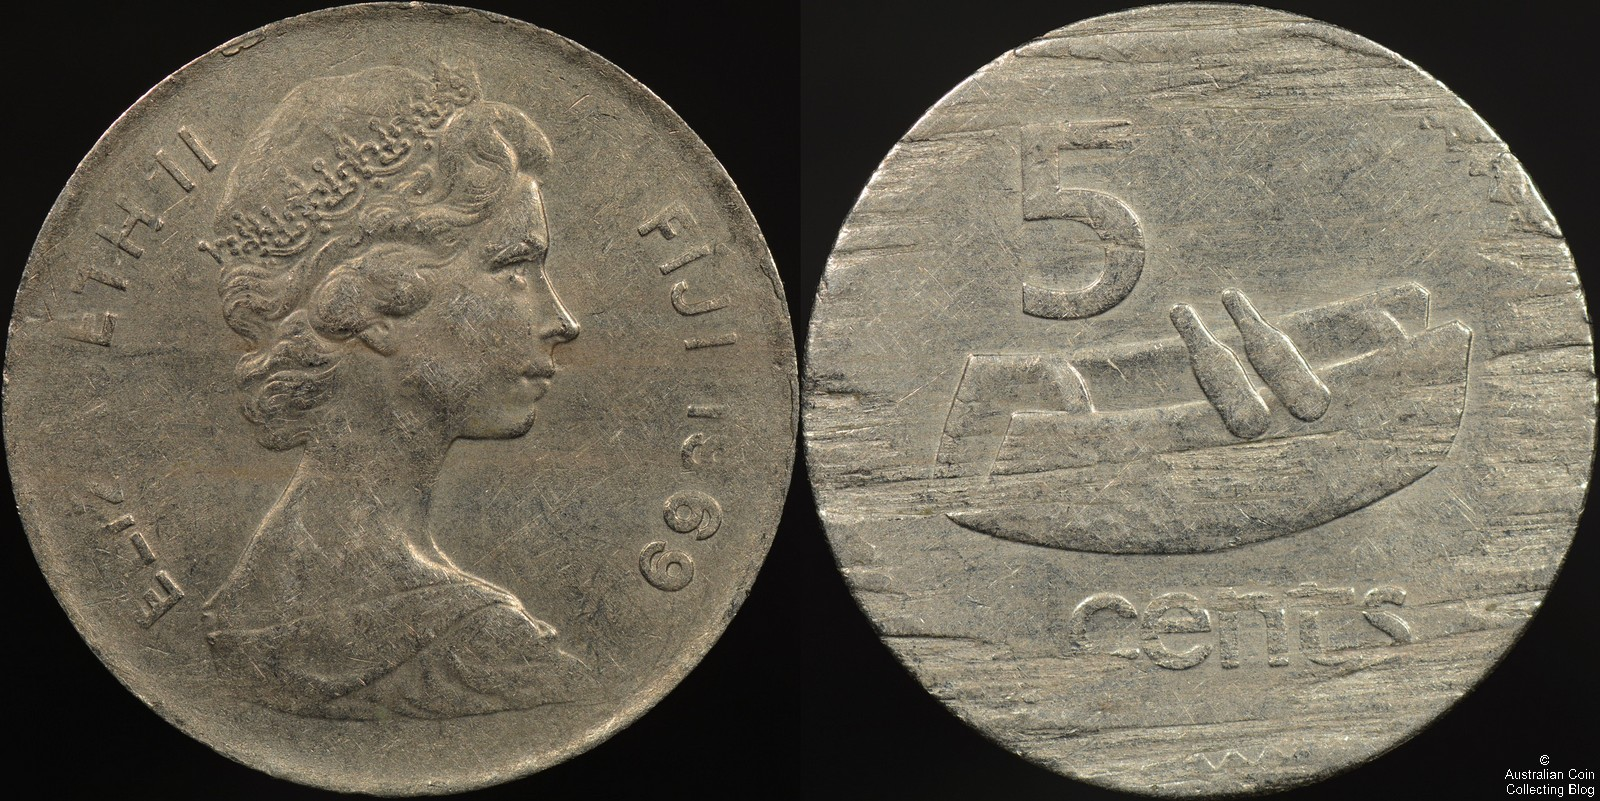 Struck on a Split Planchet Coin Error -Fiji 1969 5 cent